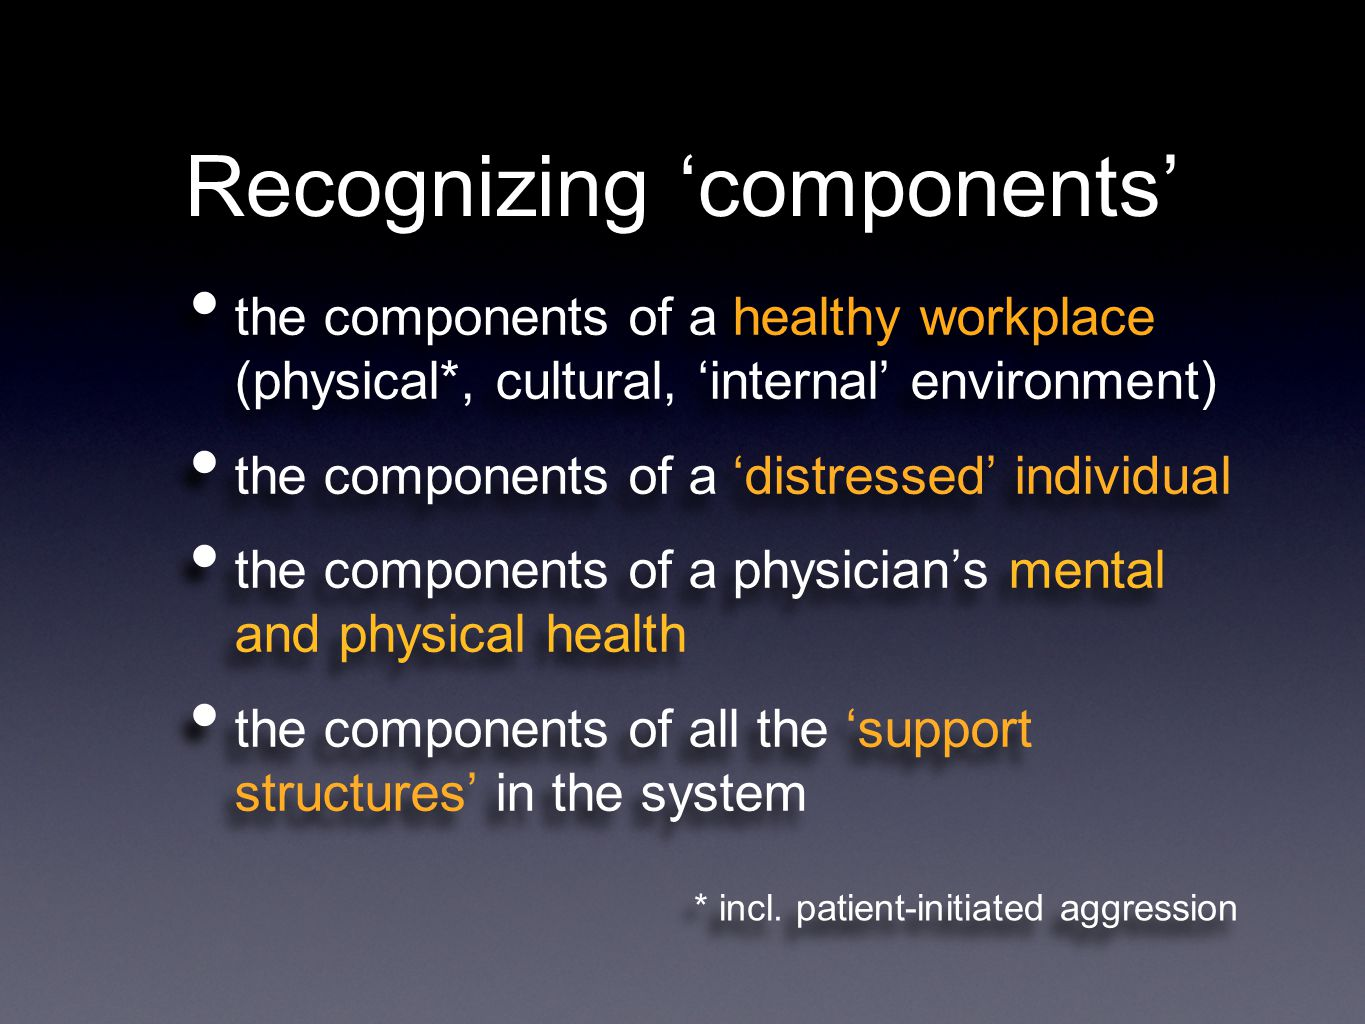 Recognizing 'components' the components of a healthy workplace (physical*, cultural, 'internal' environment) the components of a 'distressed' individual the components of a physician's mental and physical health the components of all the 'support structures' in the system the components of a healthy workplace (physical*, cultural, 'internal' environment) the components of a 'distressed' individual the components of a physician's mental and physical health the components of all the 'support structures' in the system * incl.